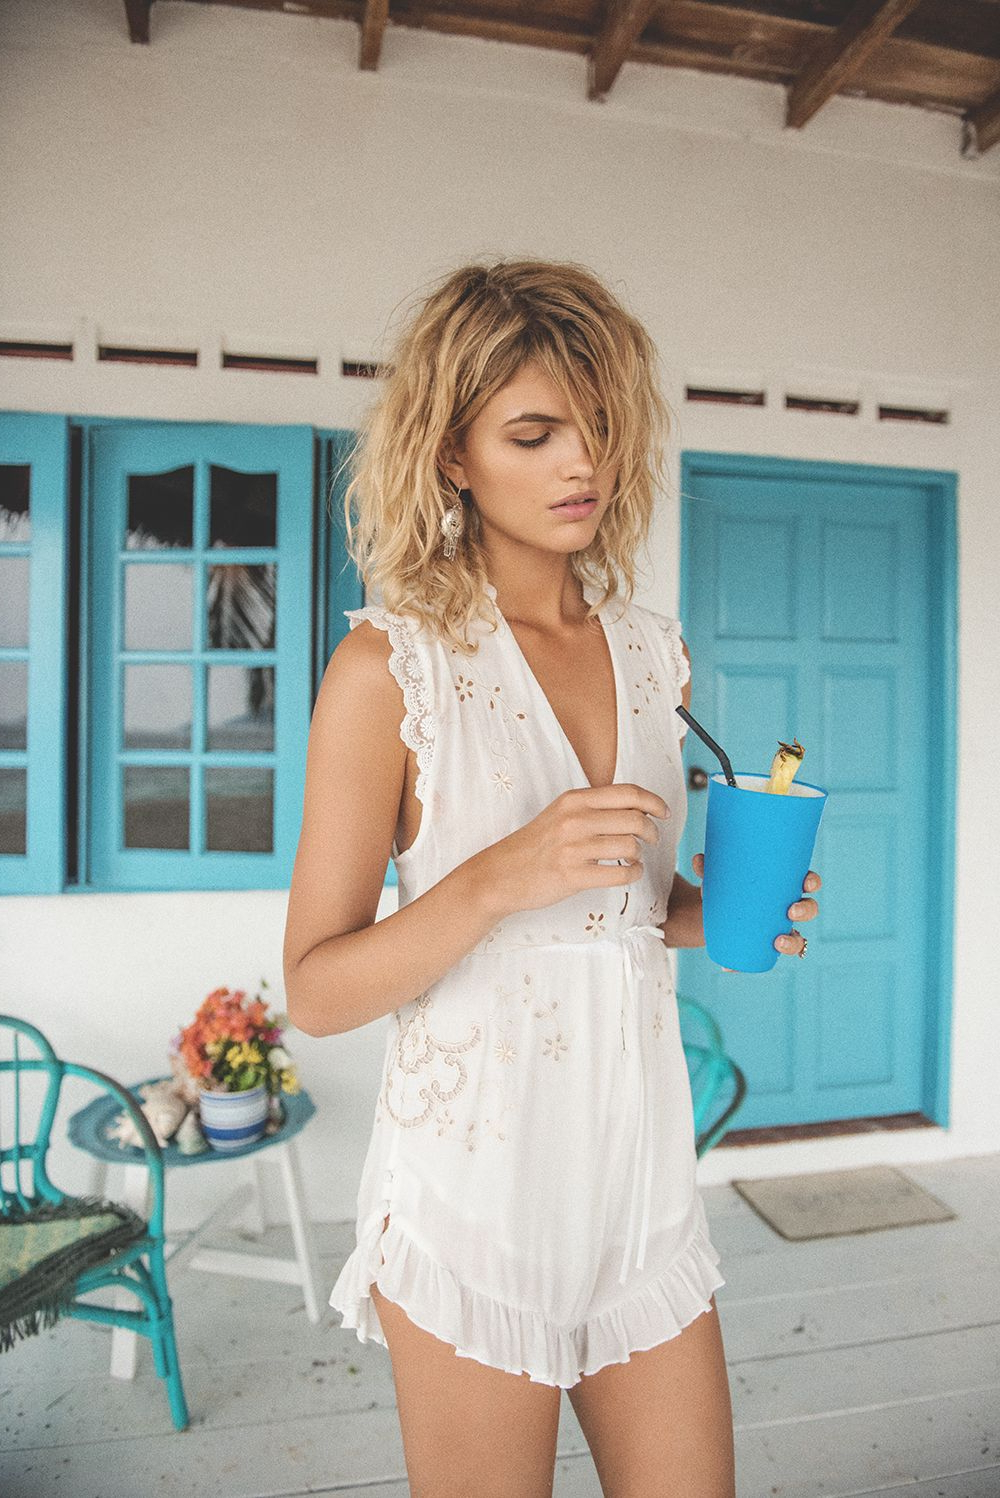 ???Boho Chic Bohemian Boho Style Hippy Hippie Chic Bohème Vibe In Hippie Short Hairstyles (View 7 of 25)